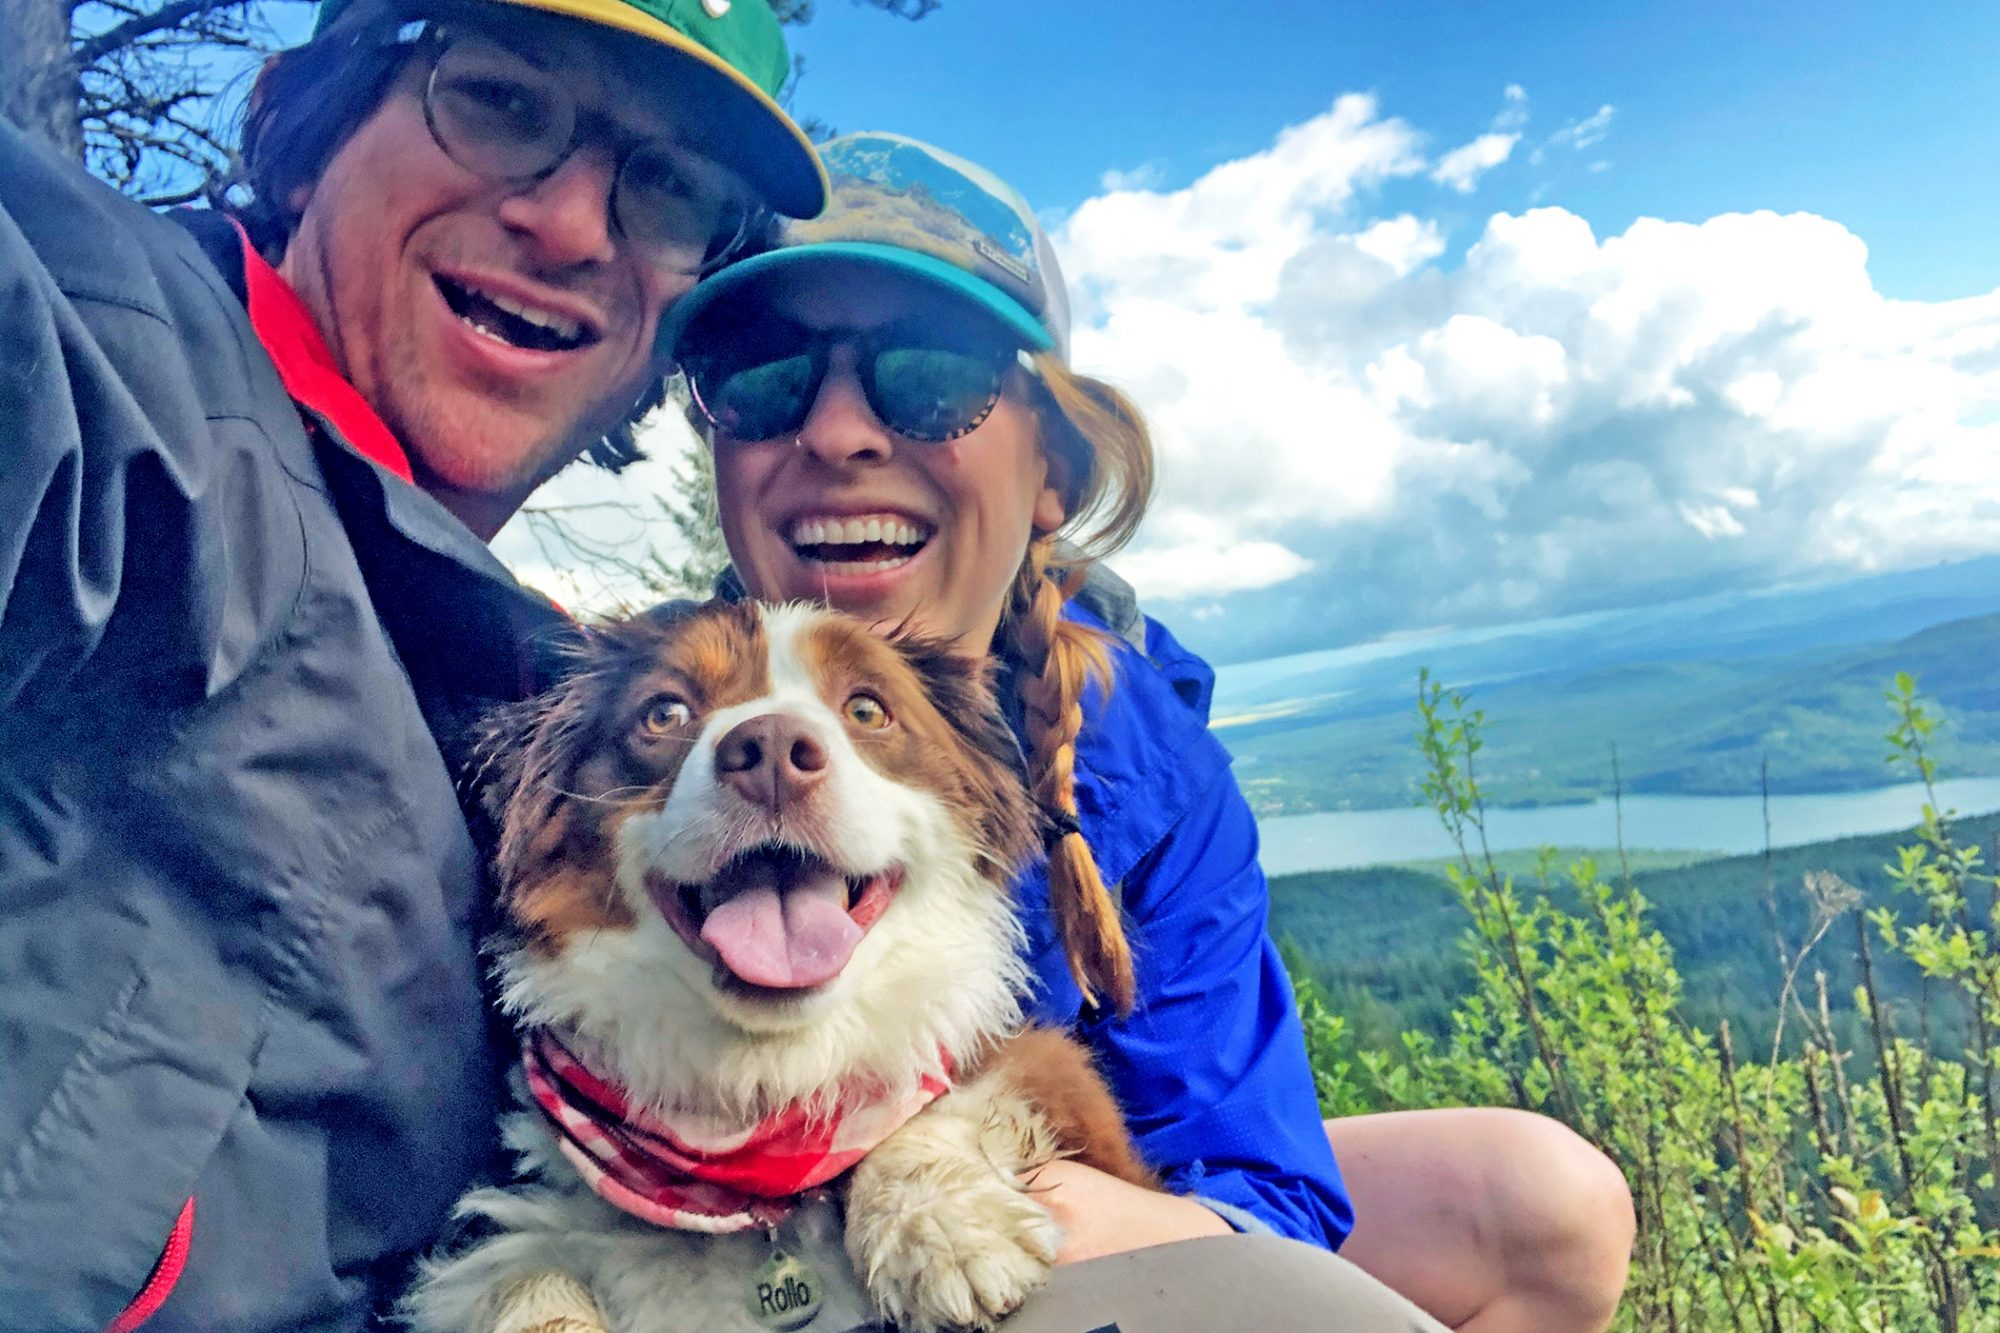 Couple embraces dog named Rollo on top of a hill